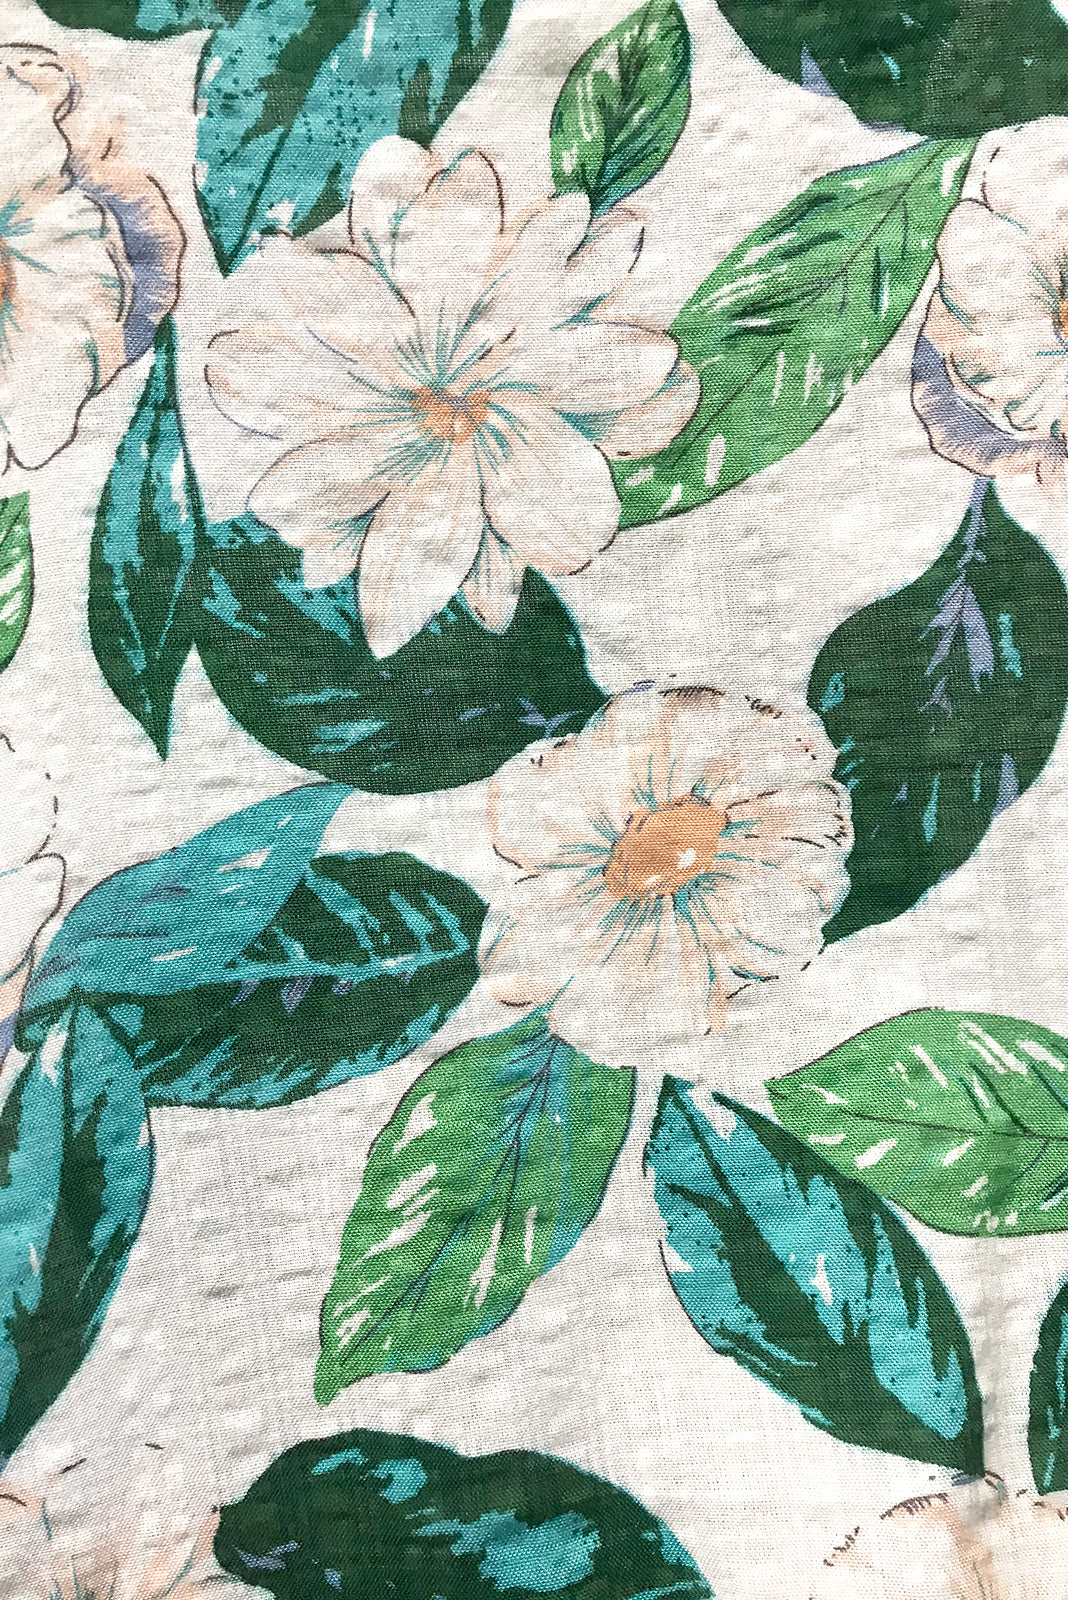 Fabric swatch of Valencia Pearl Flowers Cami Top featuring cotton/viscose blend in white and green floral print.